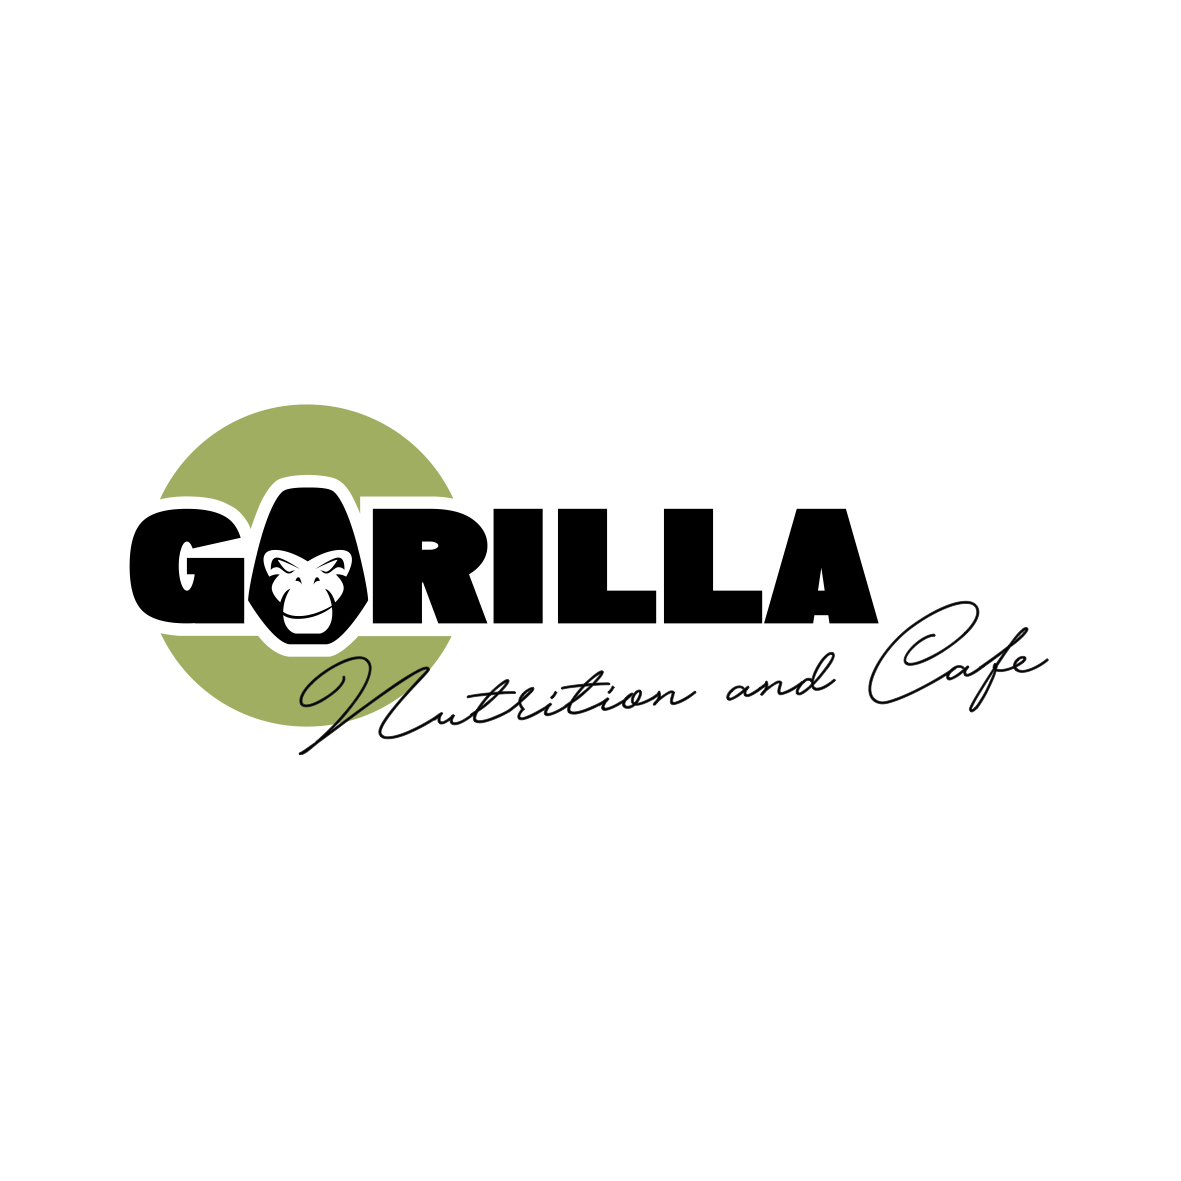 Gorilla Nutrition & Cafe